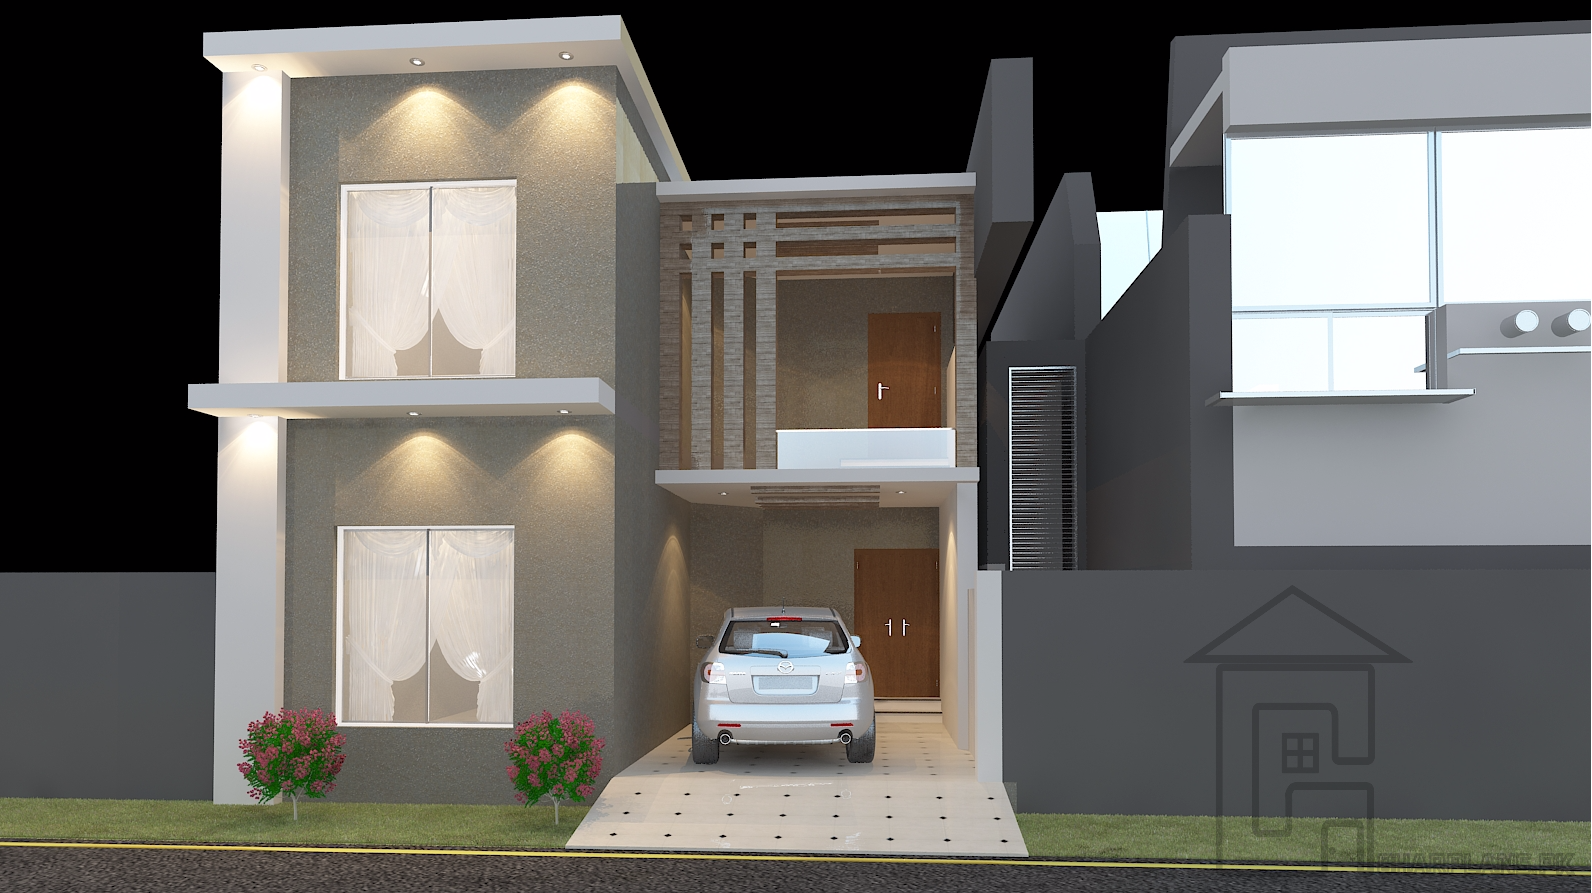 House Plans Pakistan, Home Design, 5, 10 and 20 Marla 1, 2